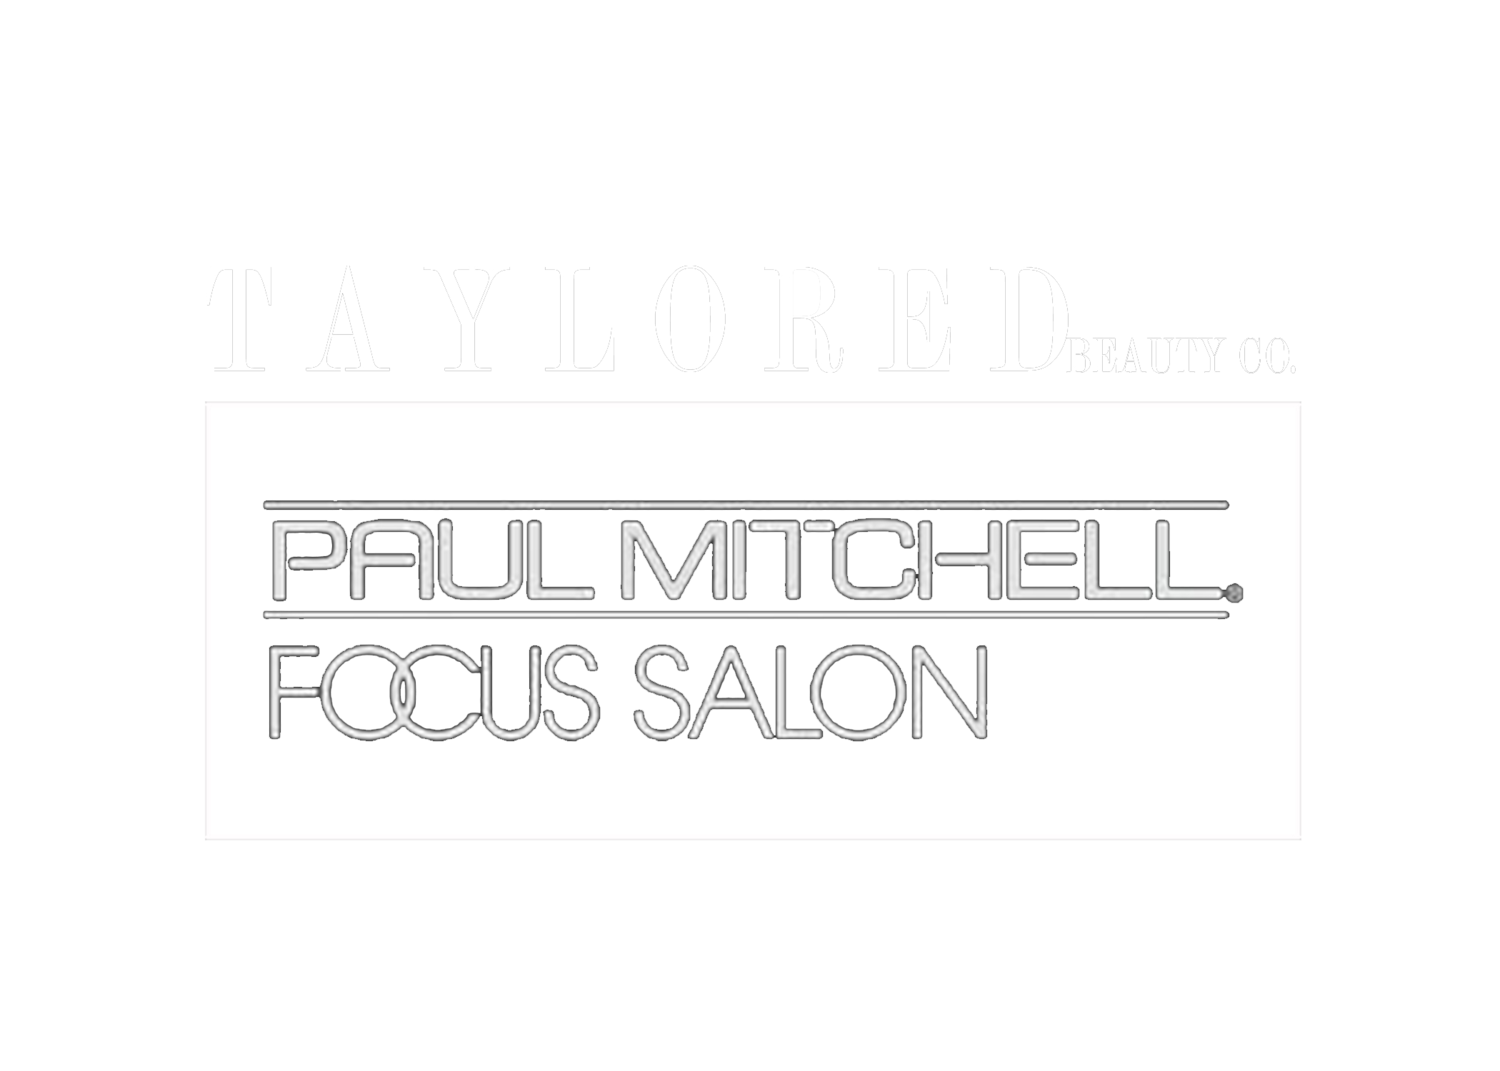 Taylored Beauty Co.